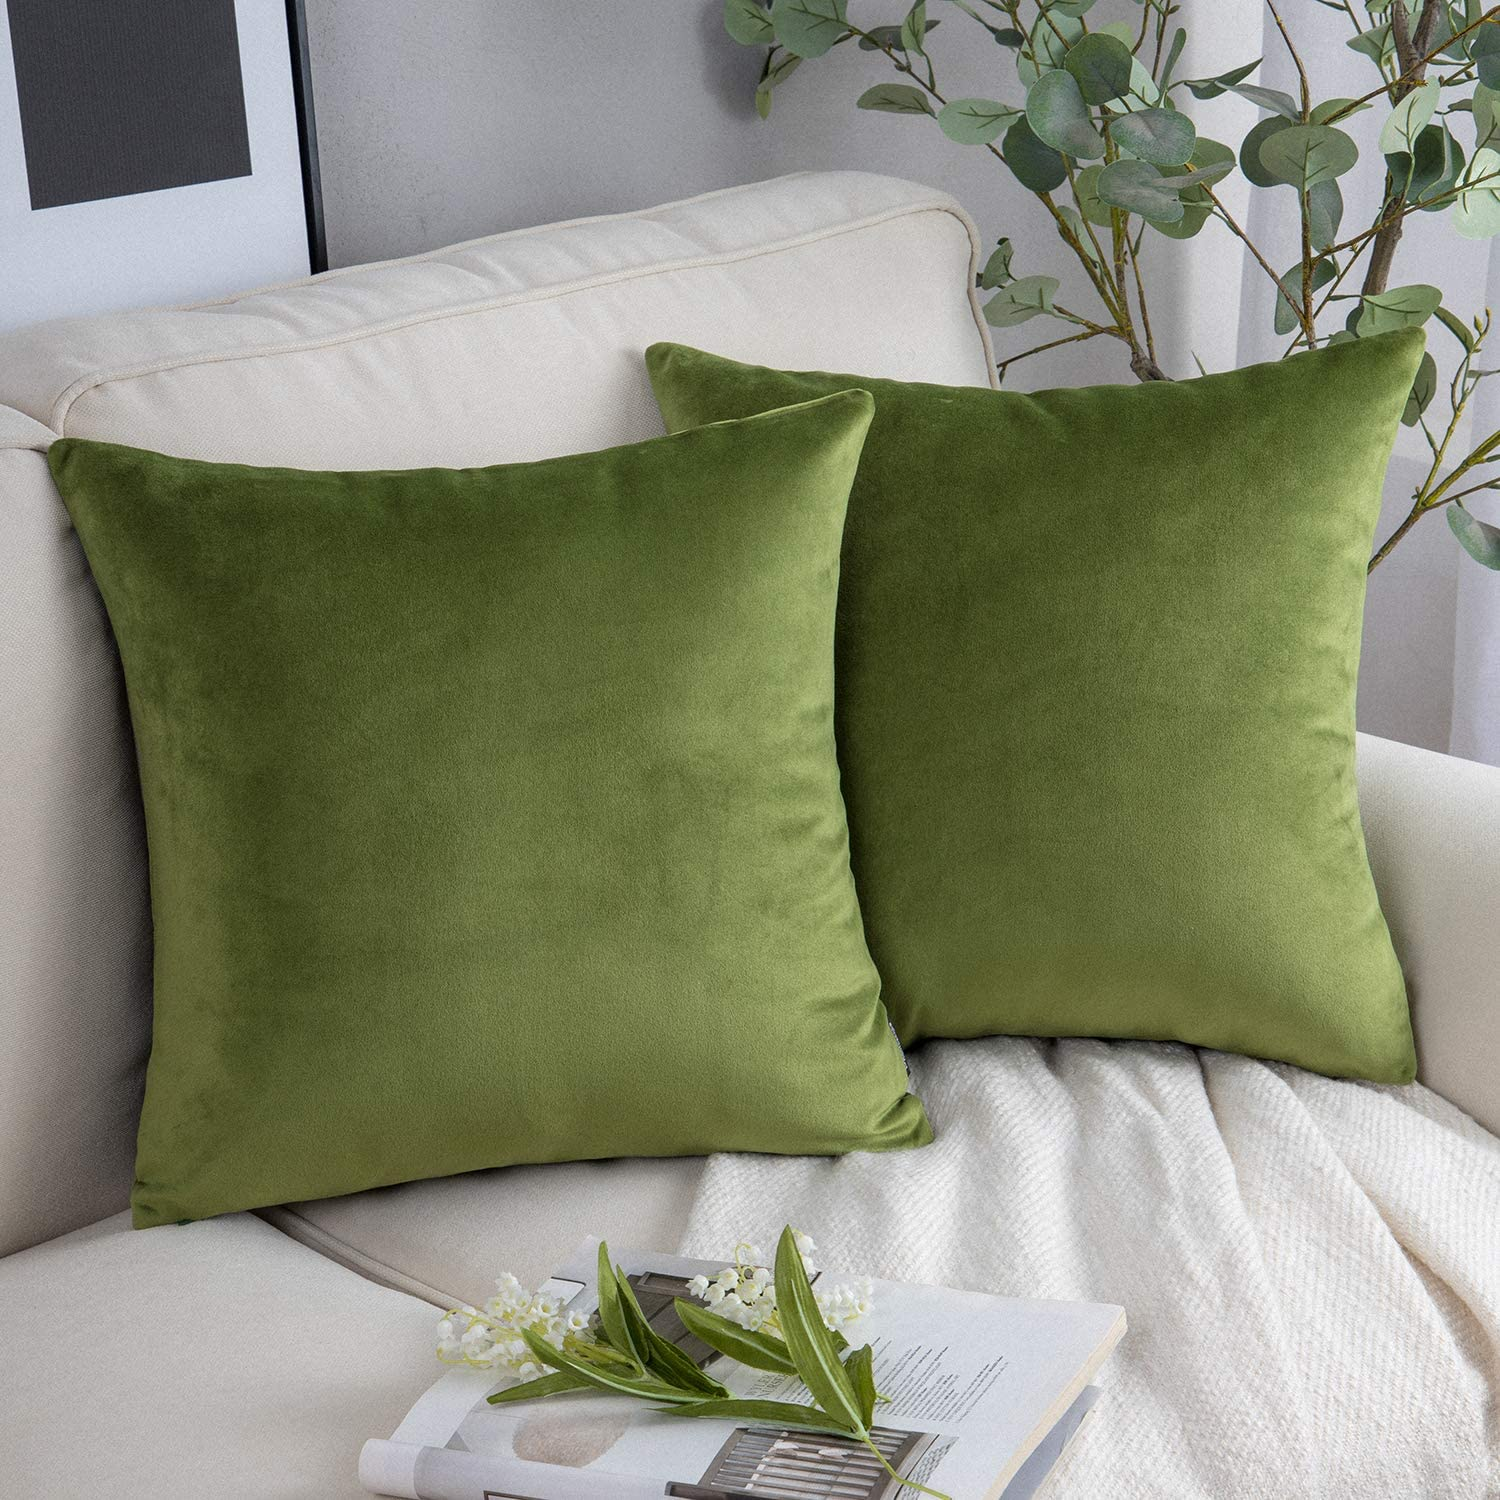 Phantoscope Pack of 2 Velvet Manufacturer direct delivery Throw Soft Limited price Decorative Covers Pillow